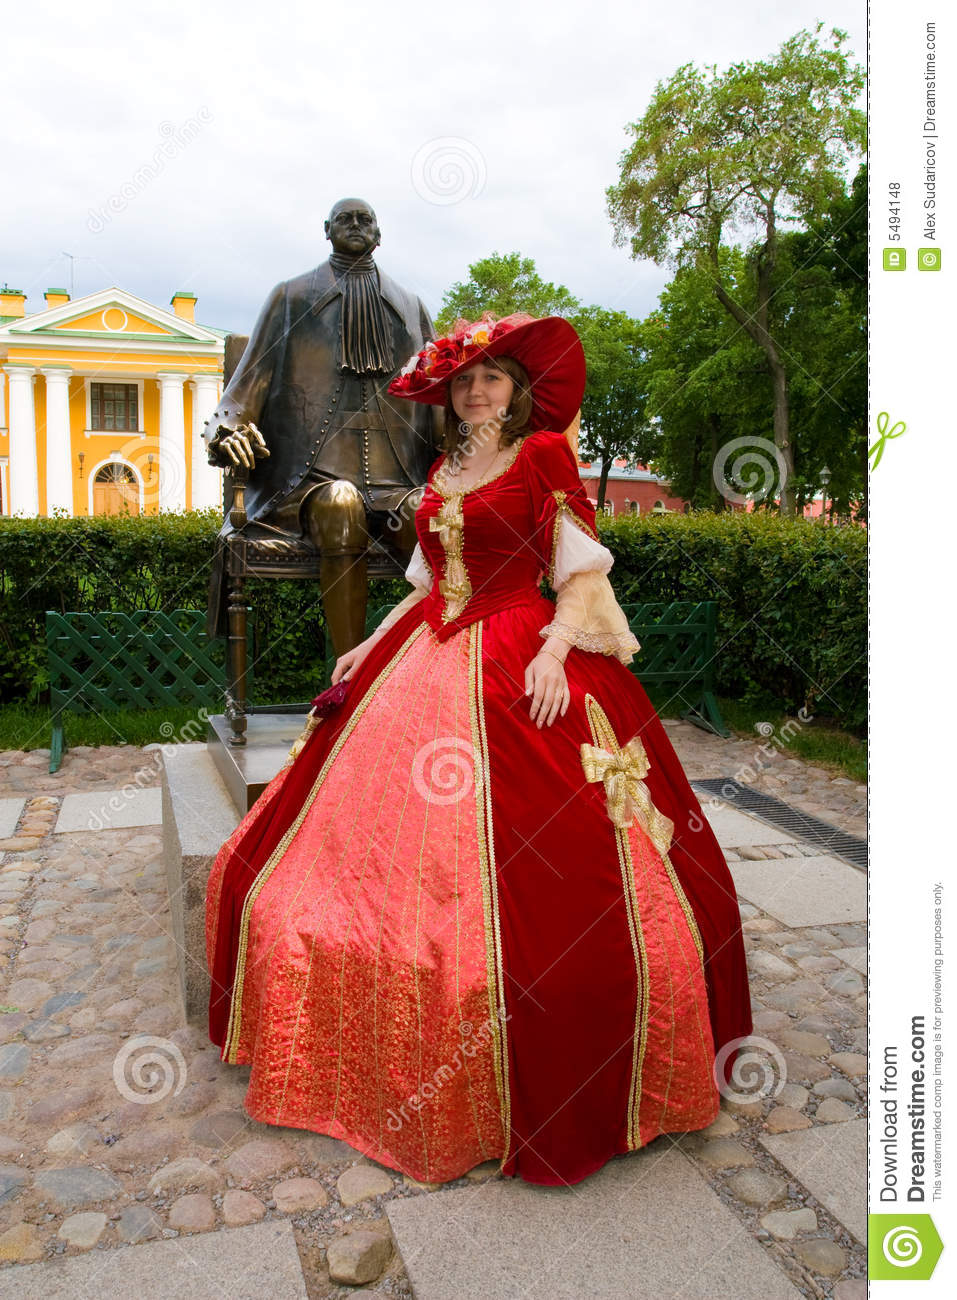 lady in red dress stock photo image of peter tradition 5494148. Black Bedroom Furniture Sets. Home Design Ideas